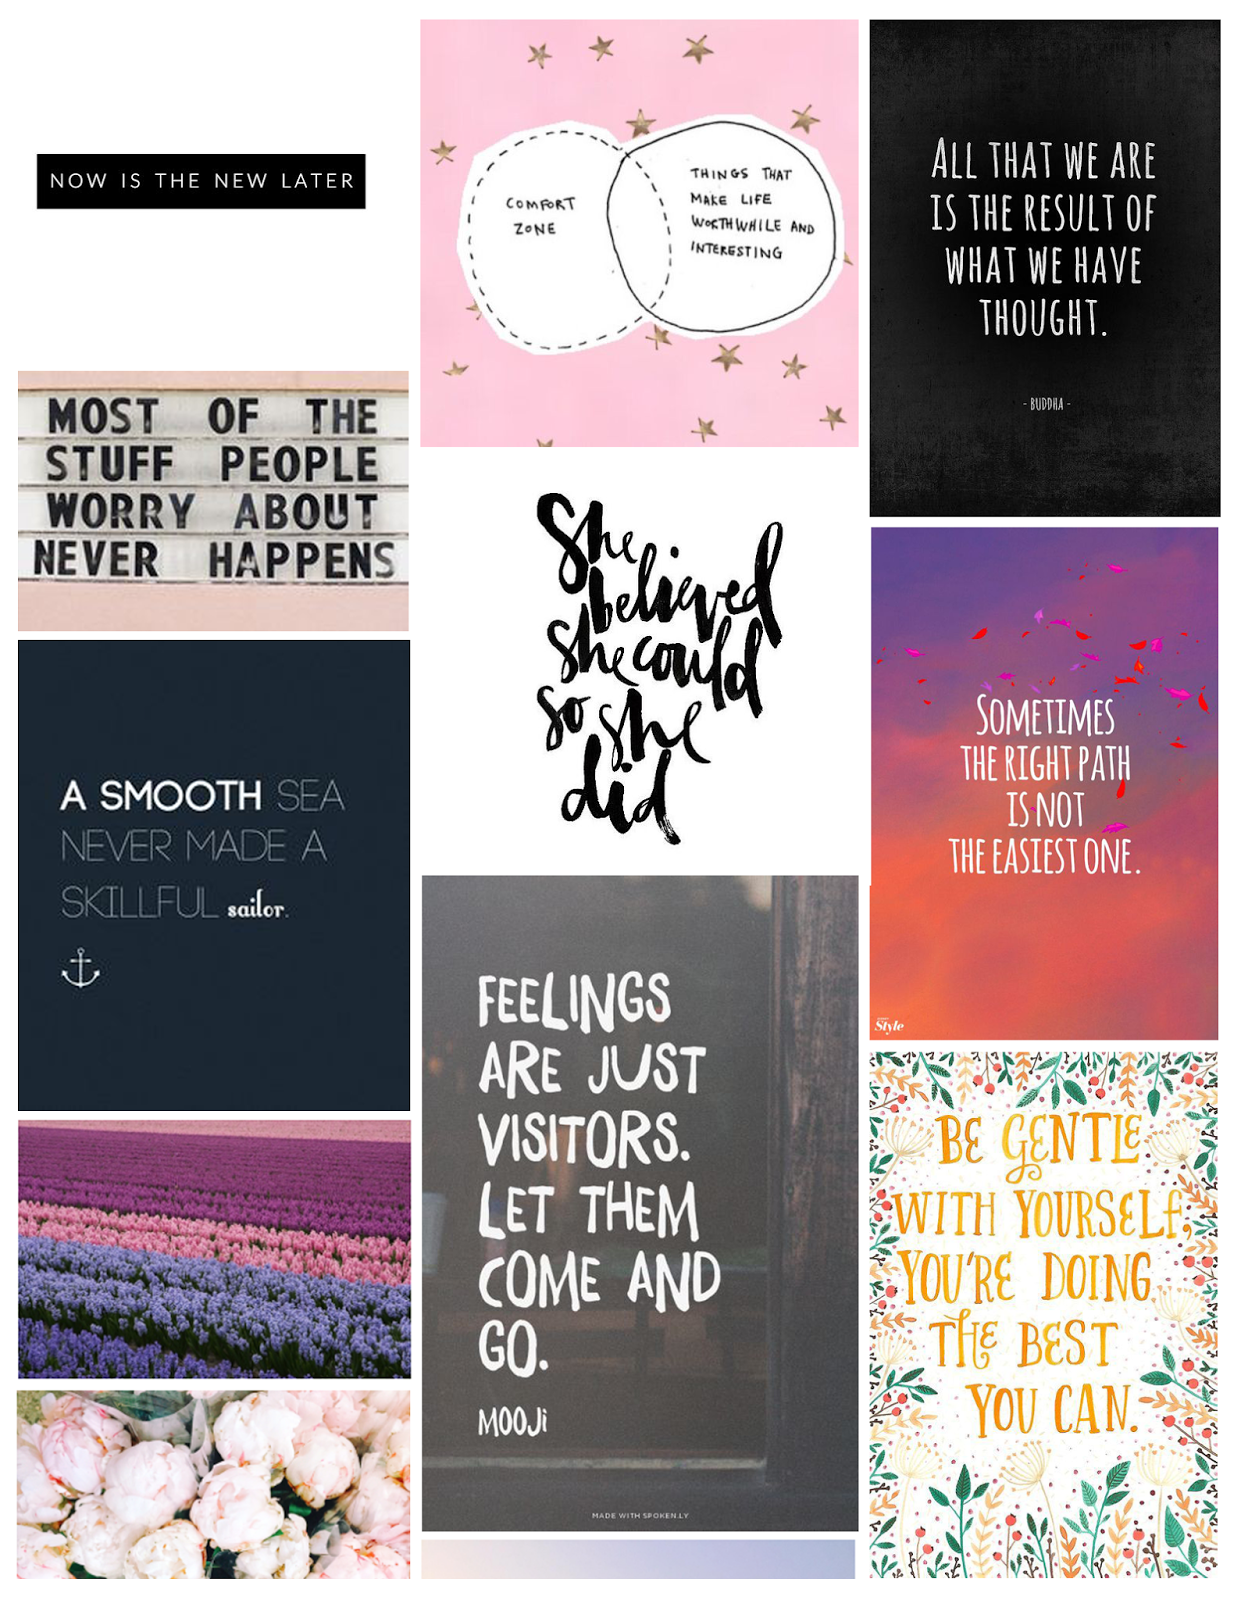 d43ca130368a47 ... of them with you all today as I need a bit of a pick me up and reading  these makes me feel a little bit better and inspired! My Pinterest is  'calvirose'